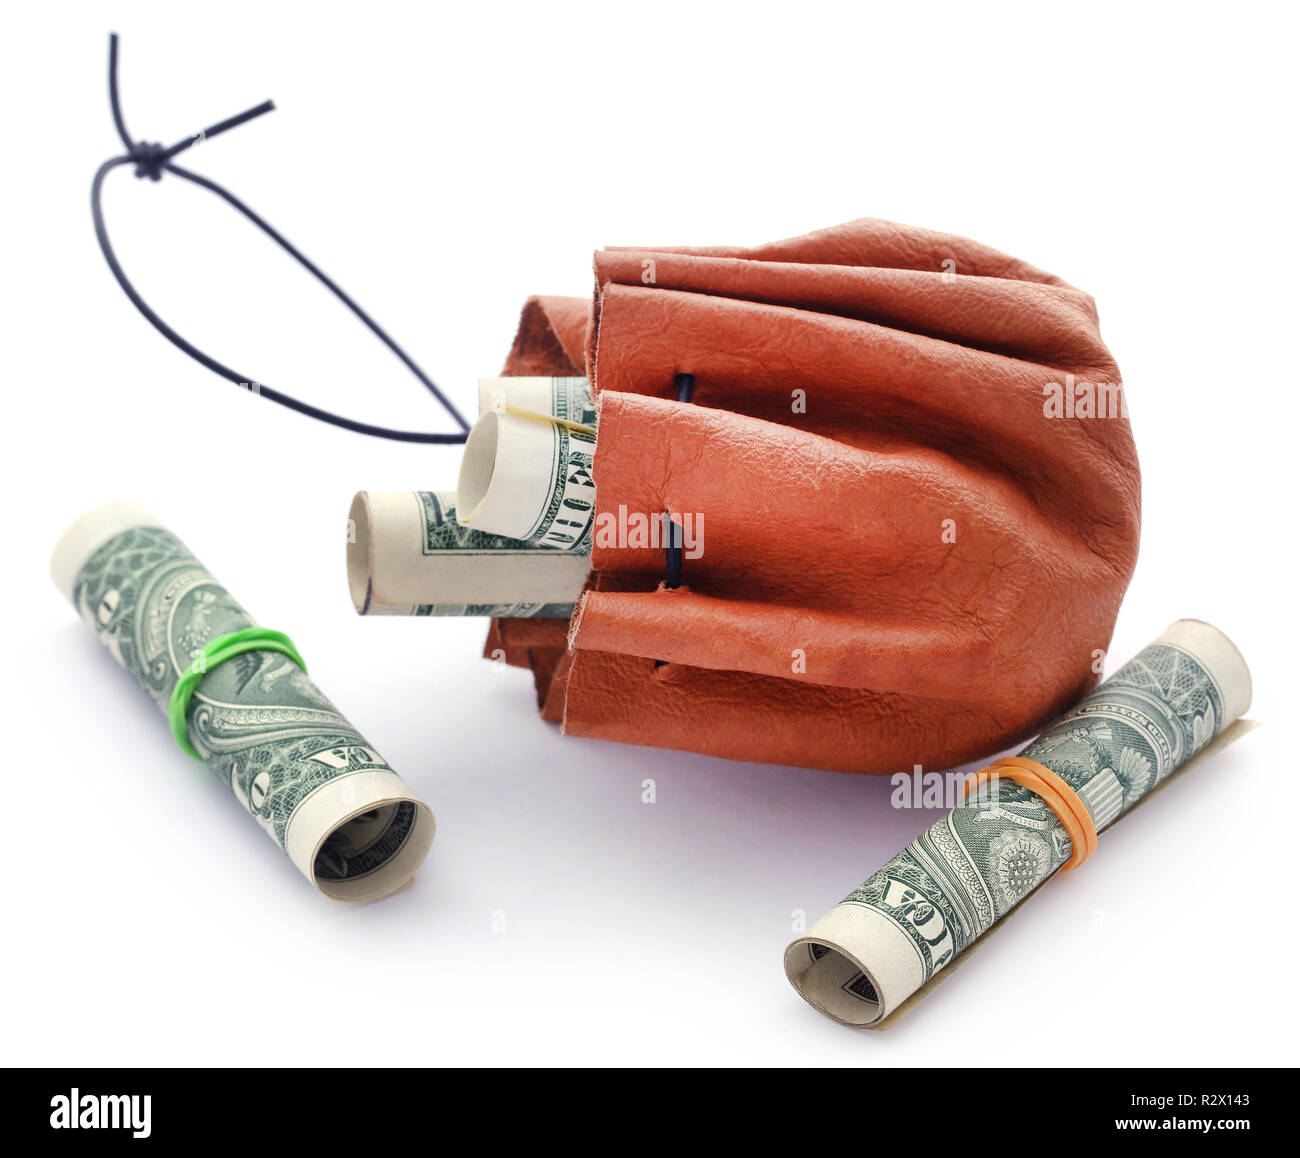 Rolled US Dollar in leather pouch over white background - Stock Image